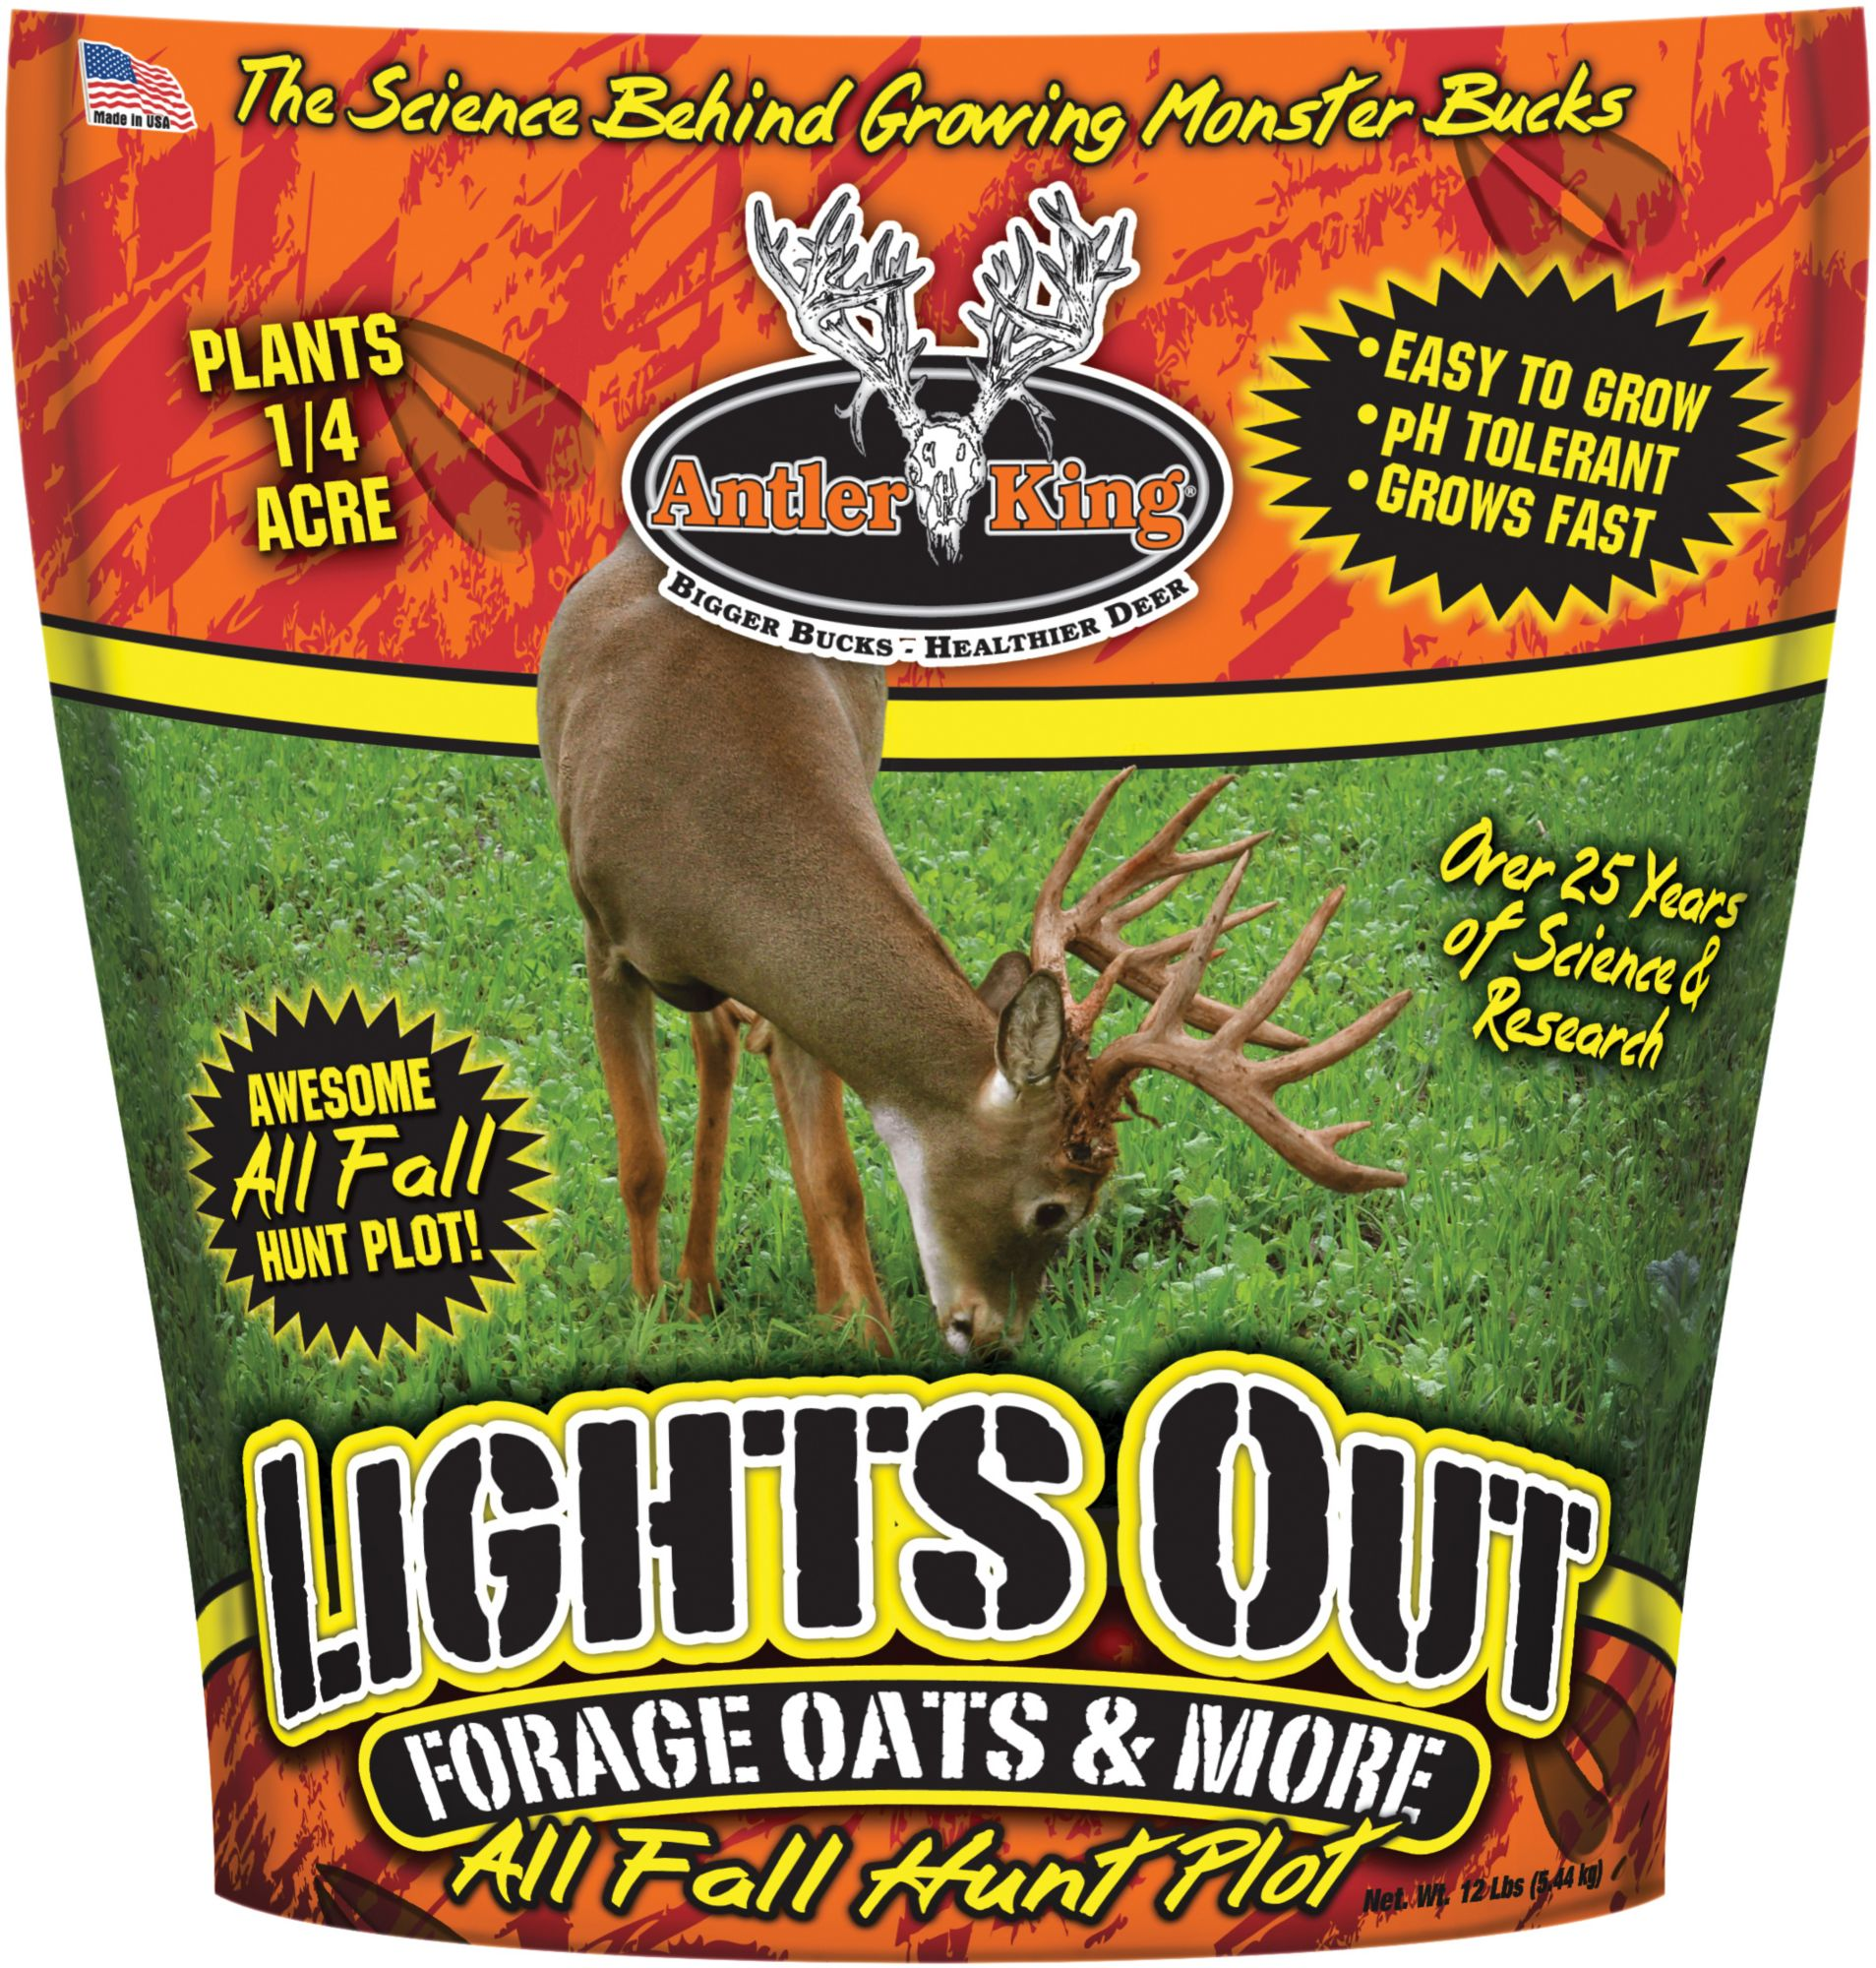 Antler King Lights Out Forage Oats Food Plot Seed thumbnail